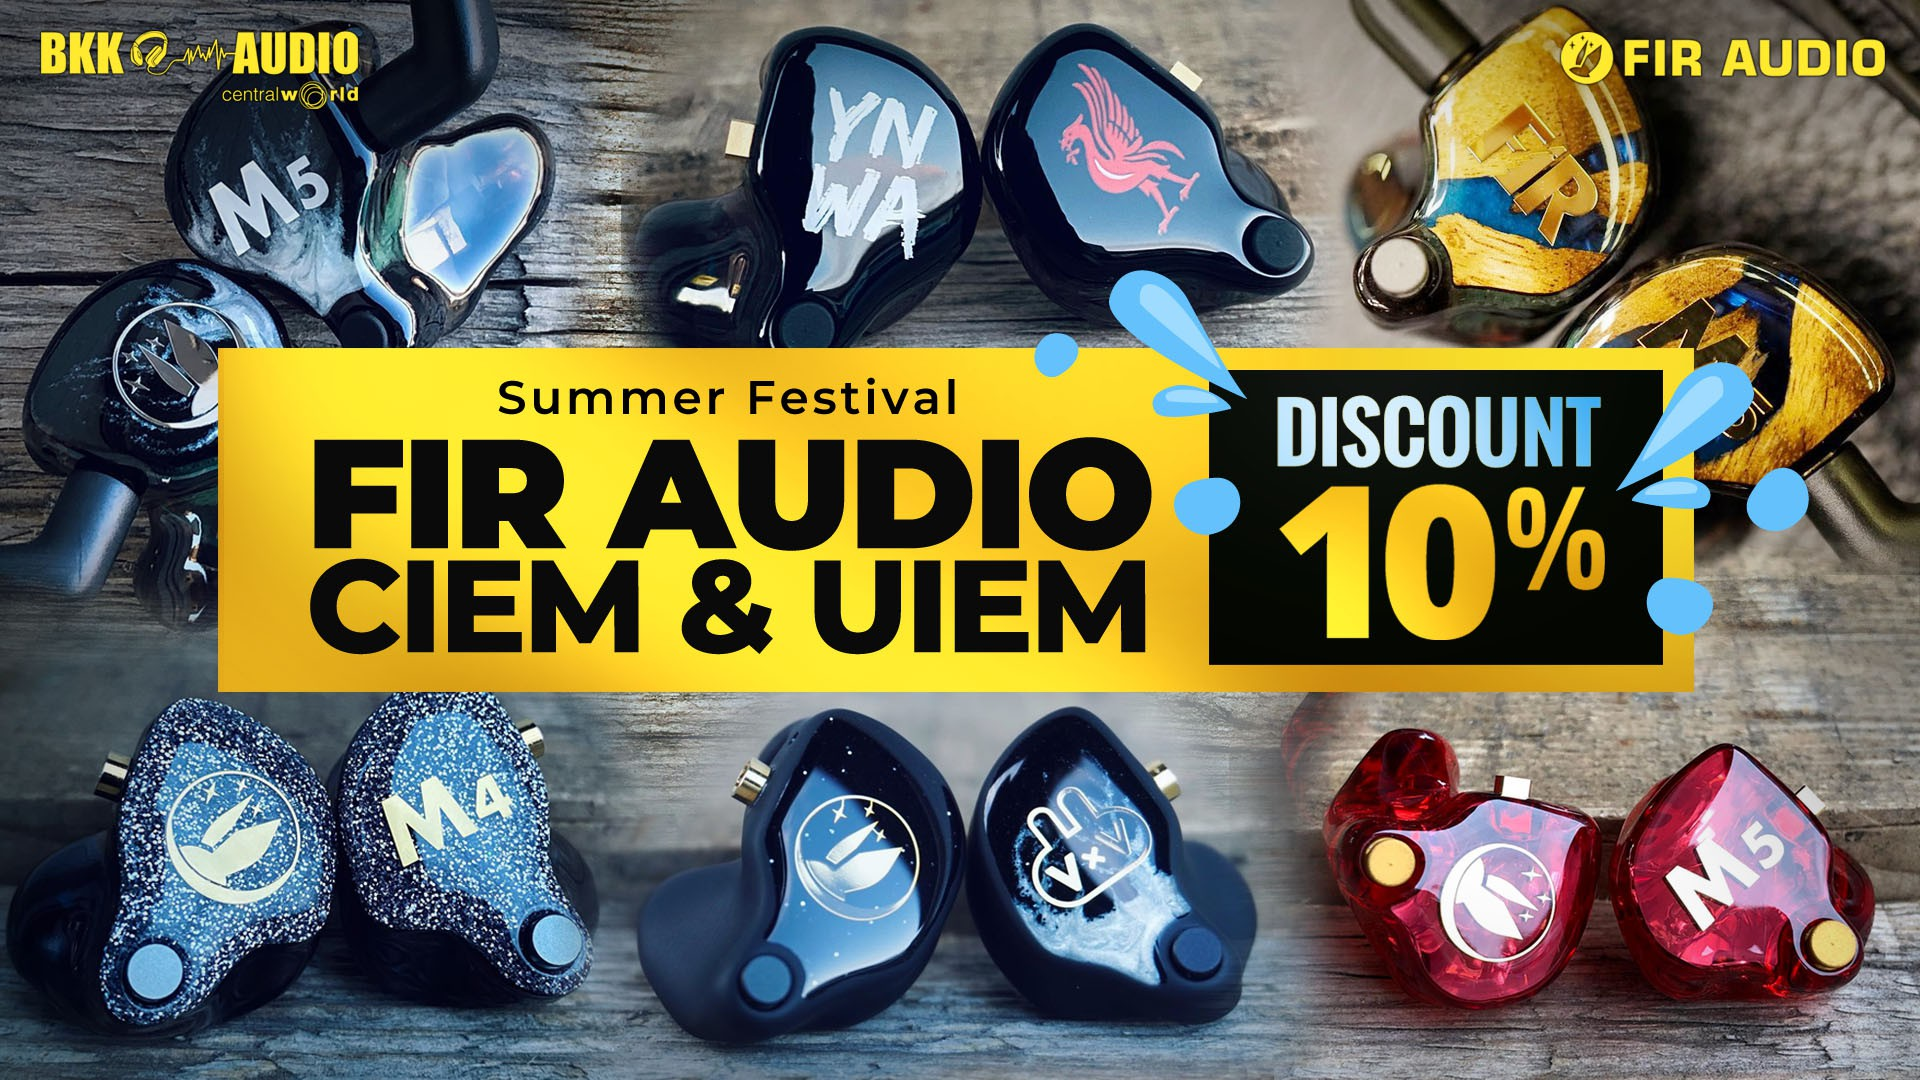 Banners ads for Fir Audio discount 10%